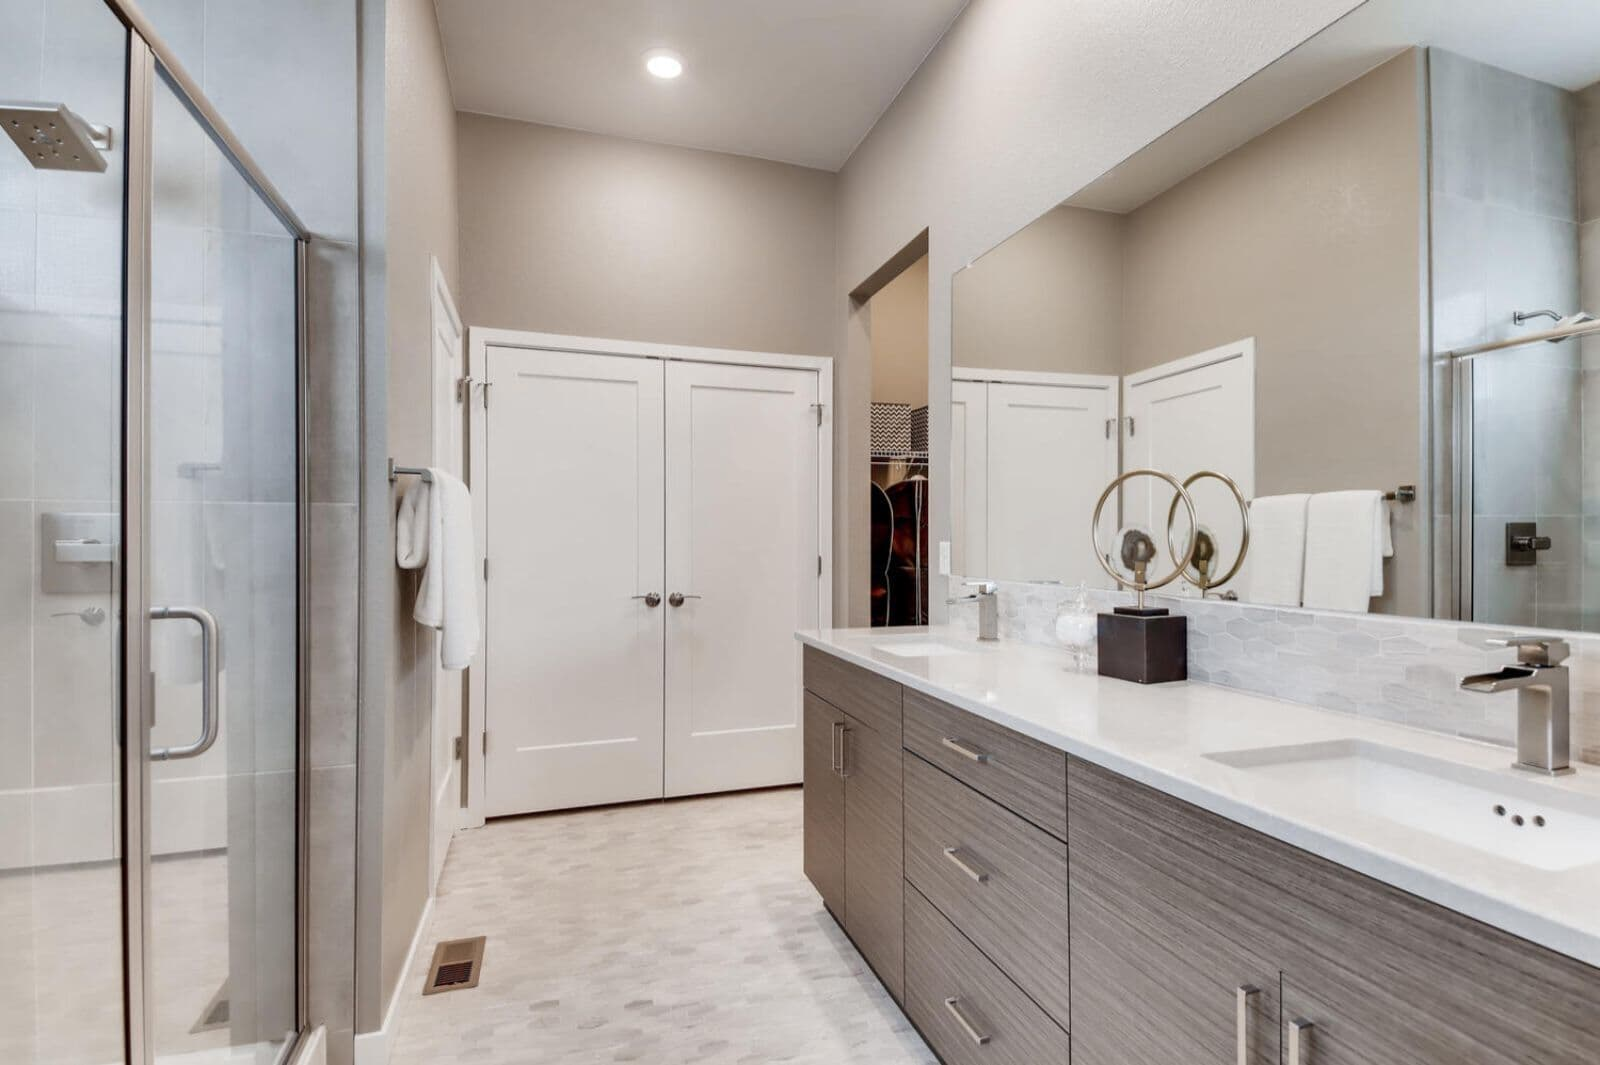 Villa-One-Master-Bath-Barefoot-Lakes-Denver-Colorado